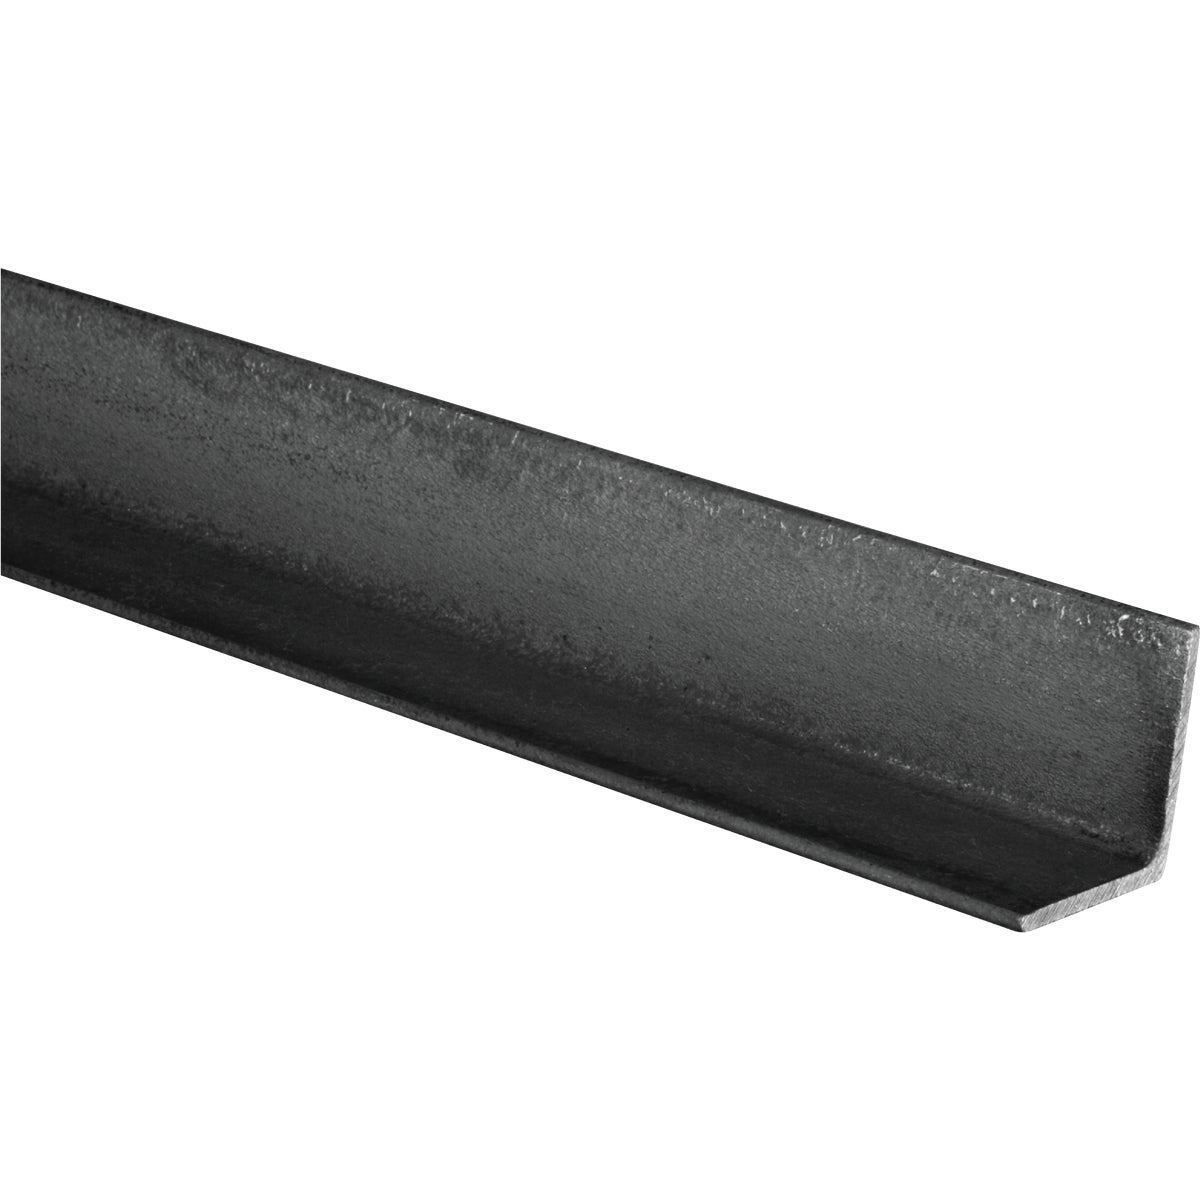 1/8X1X3' HR STEEL ANGLE - N301473 by National Mfg Co